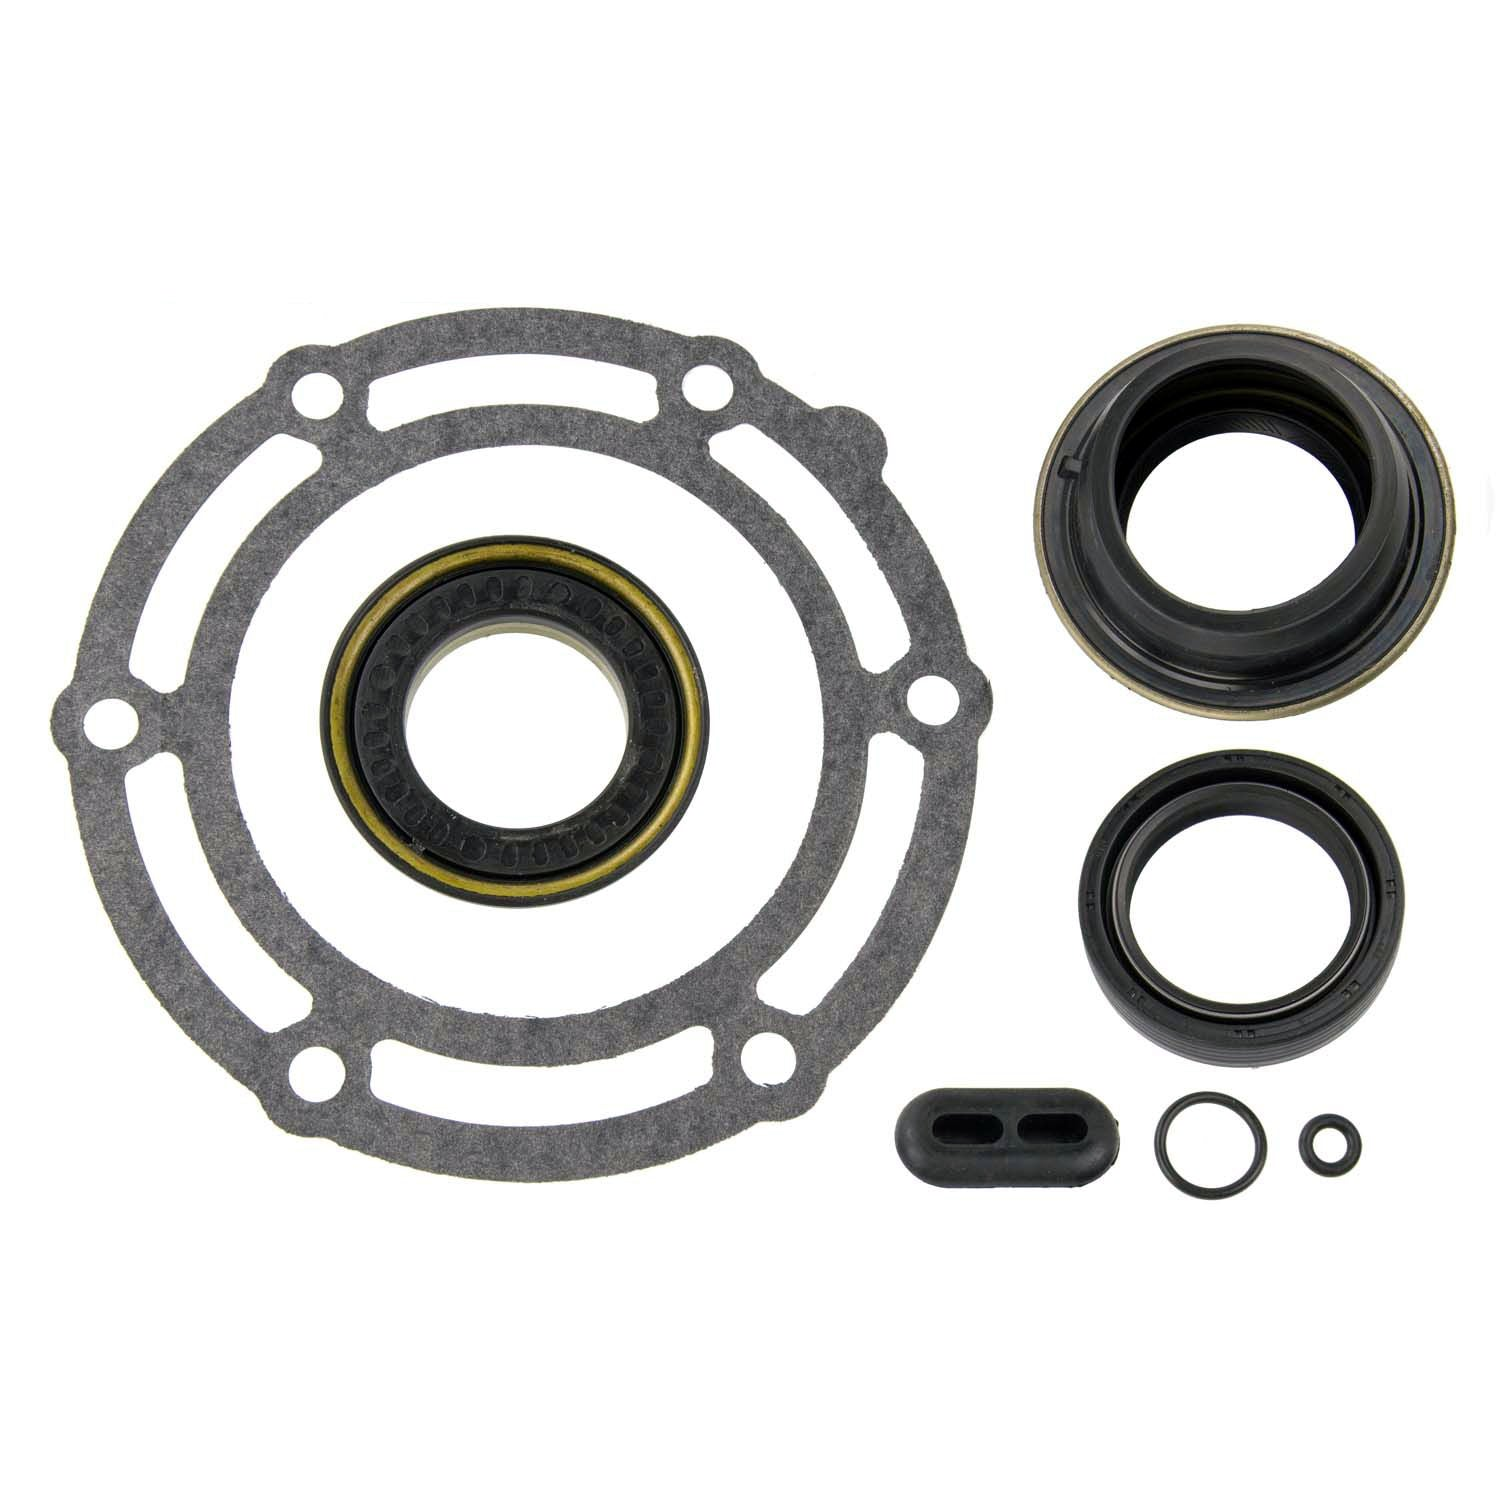 Rigid Axle New Process NP261XHD Transfer Case Gasket and Seal Kit